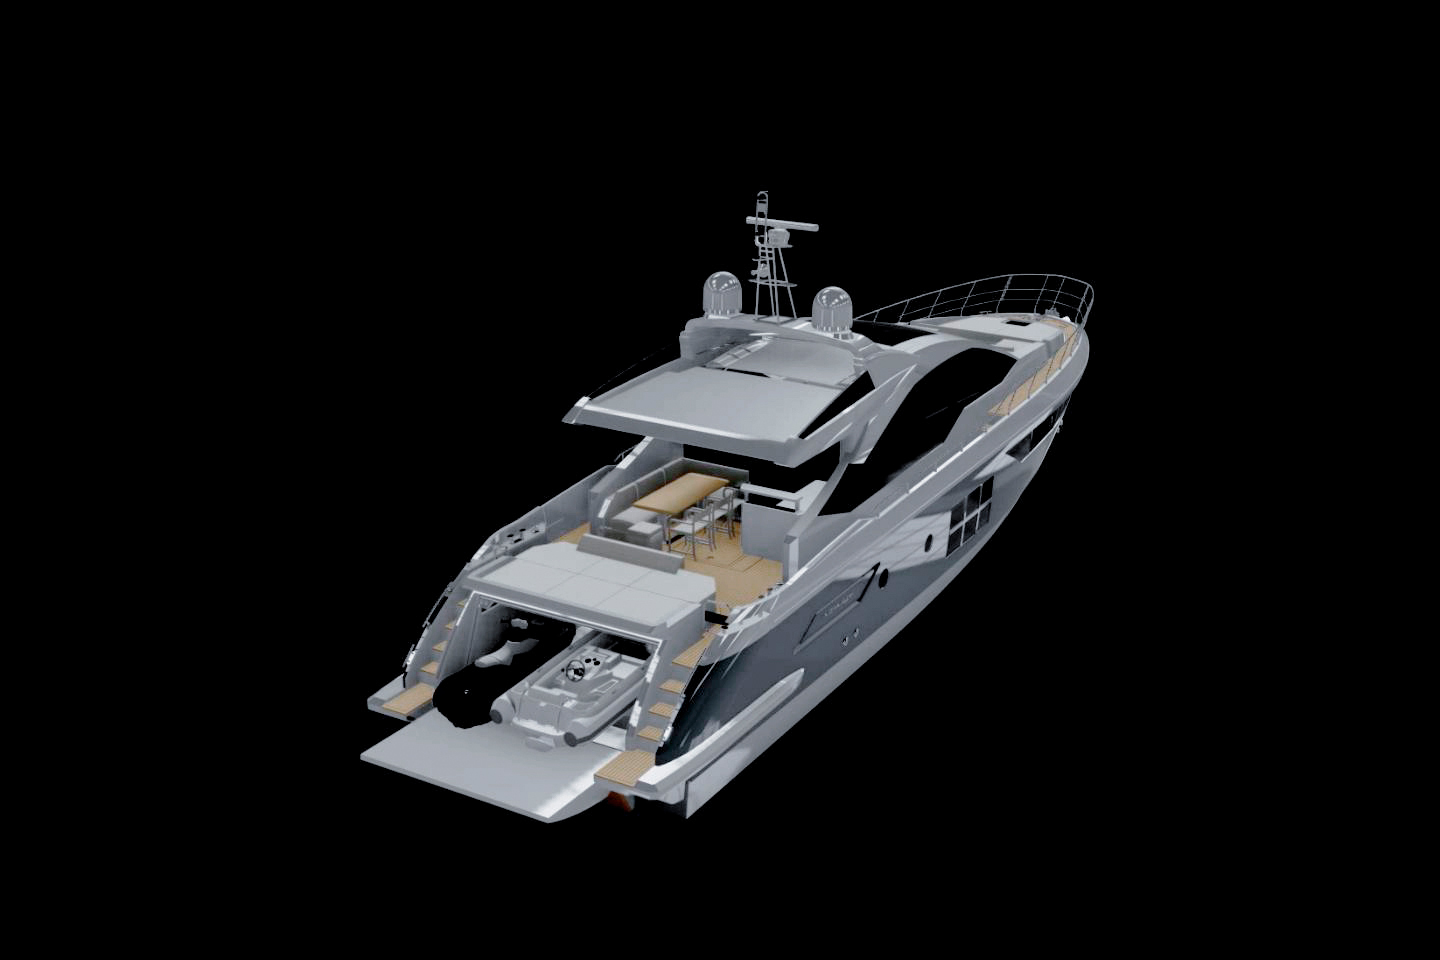 Azimut S7 Azimut Yachts Official Luxury Yacht Sales